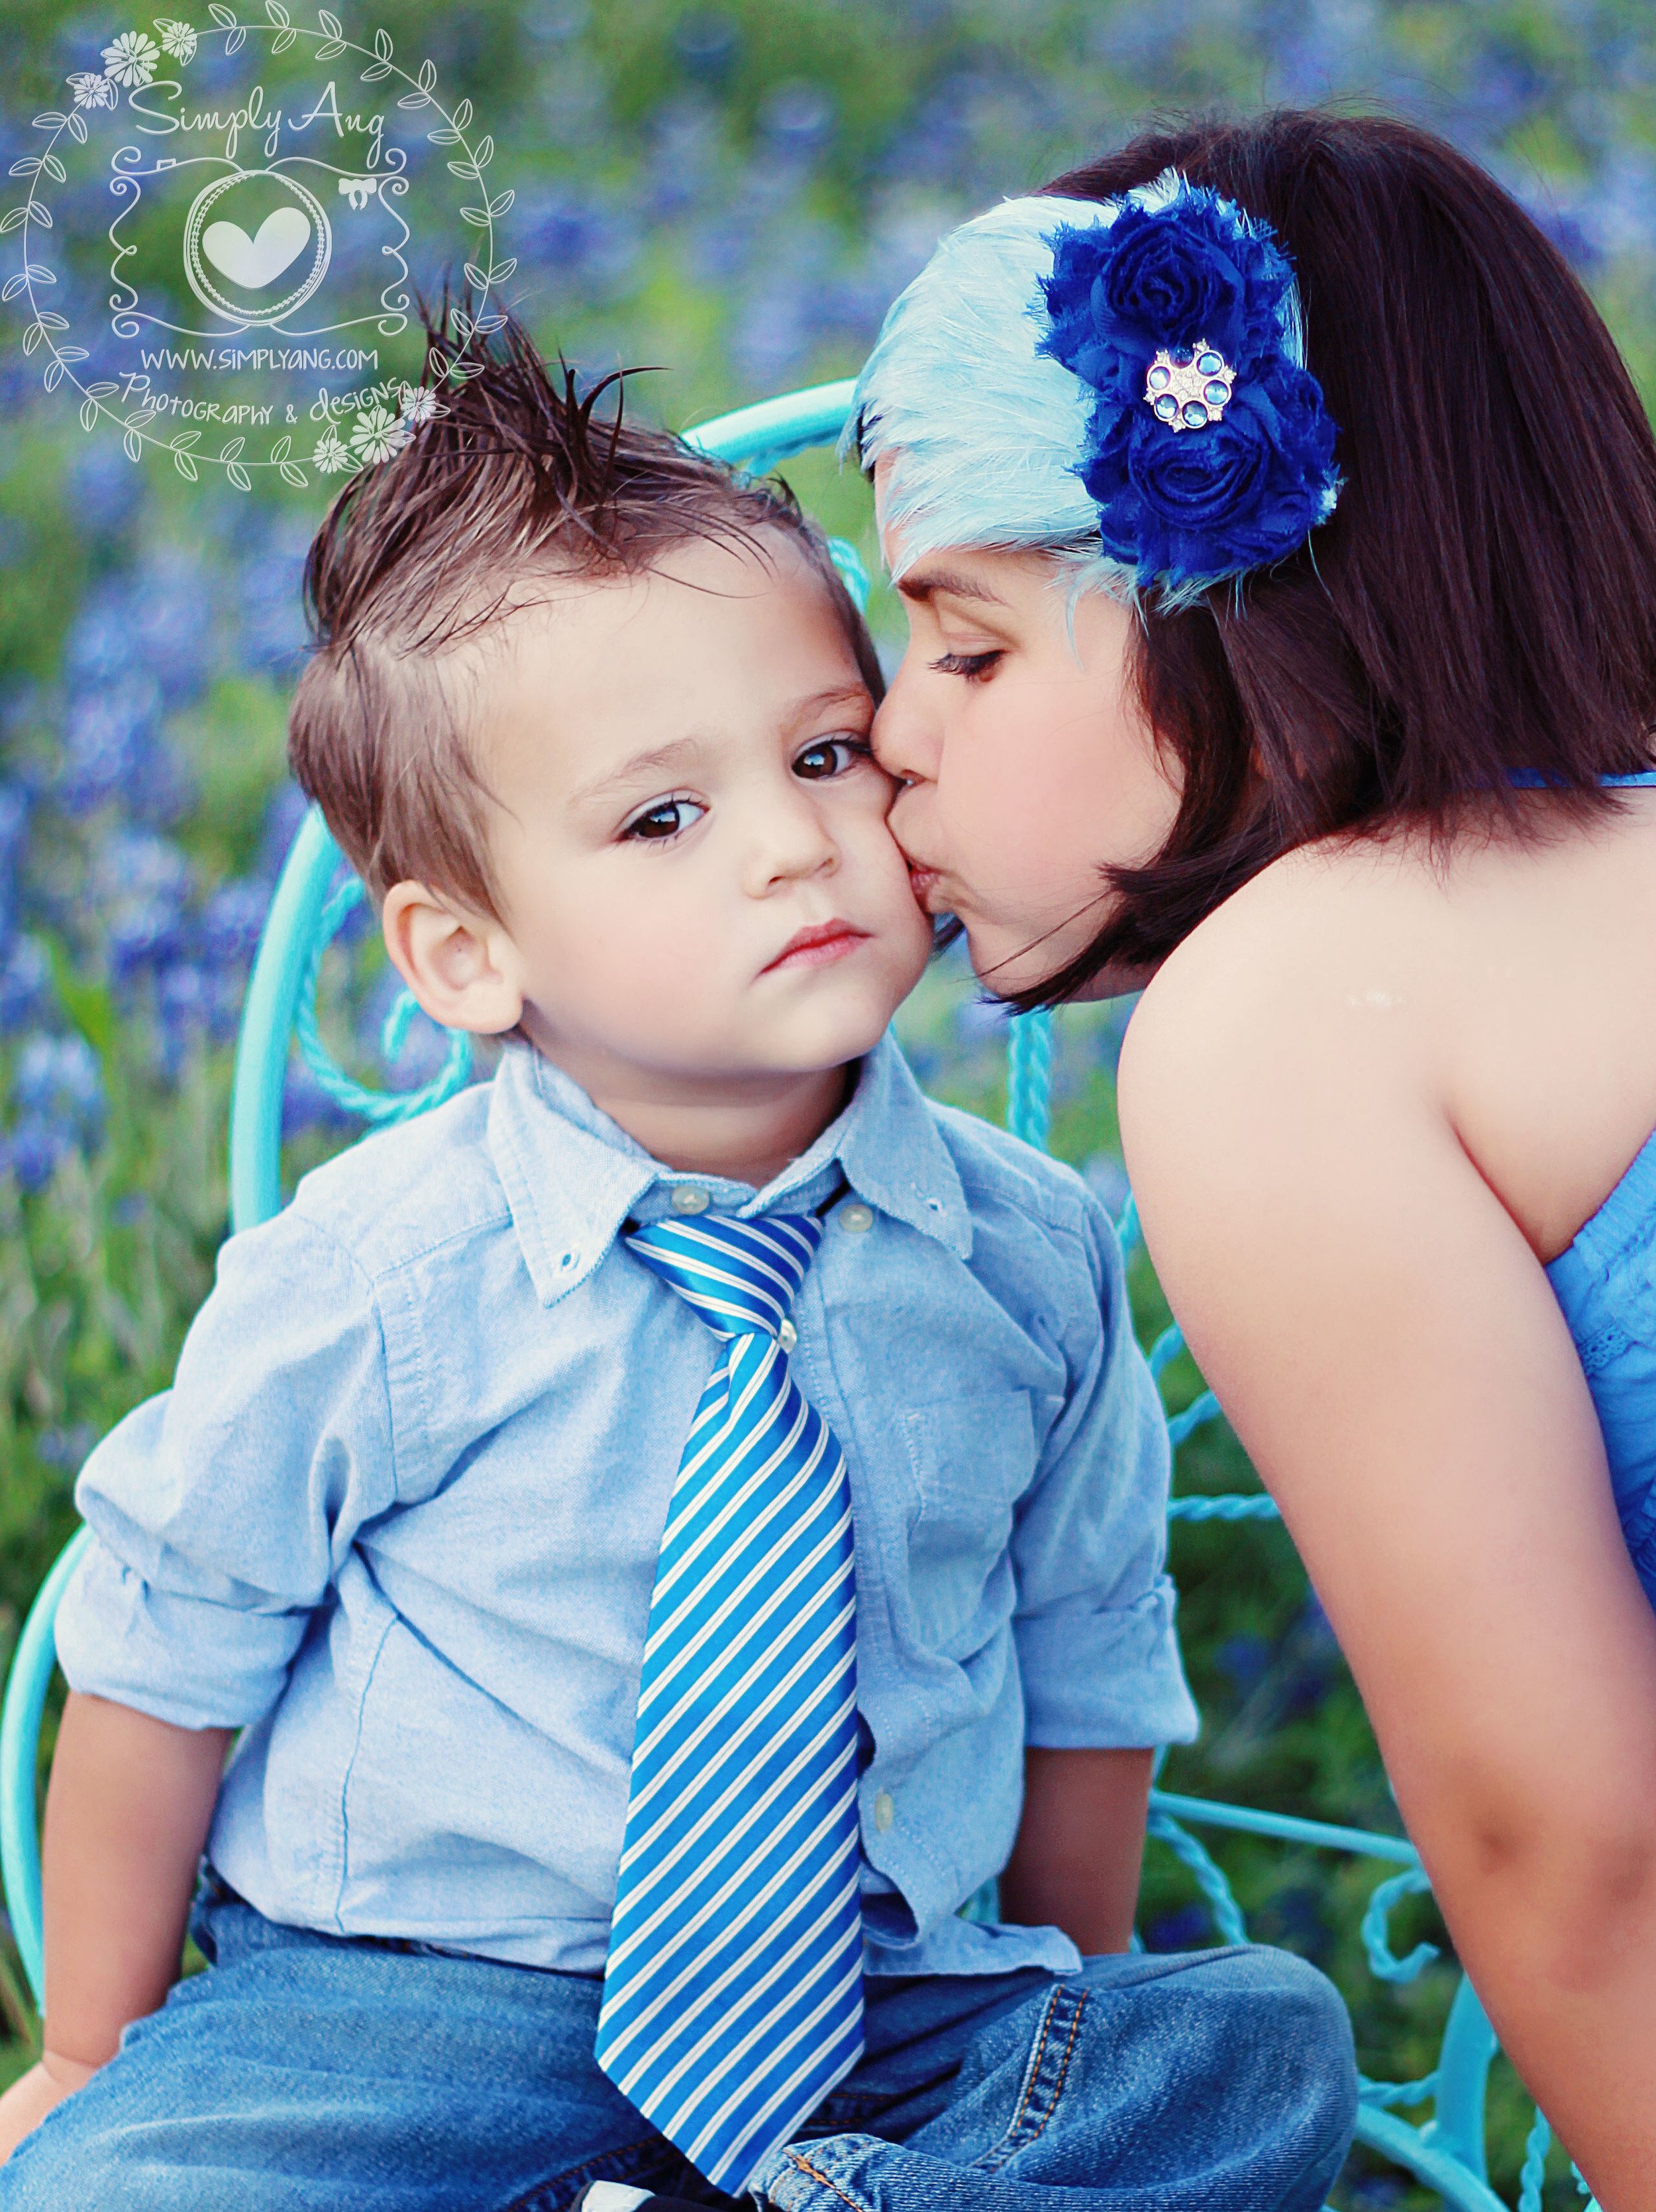 A kiss in the Blue Bonnets